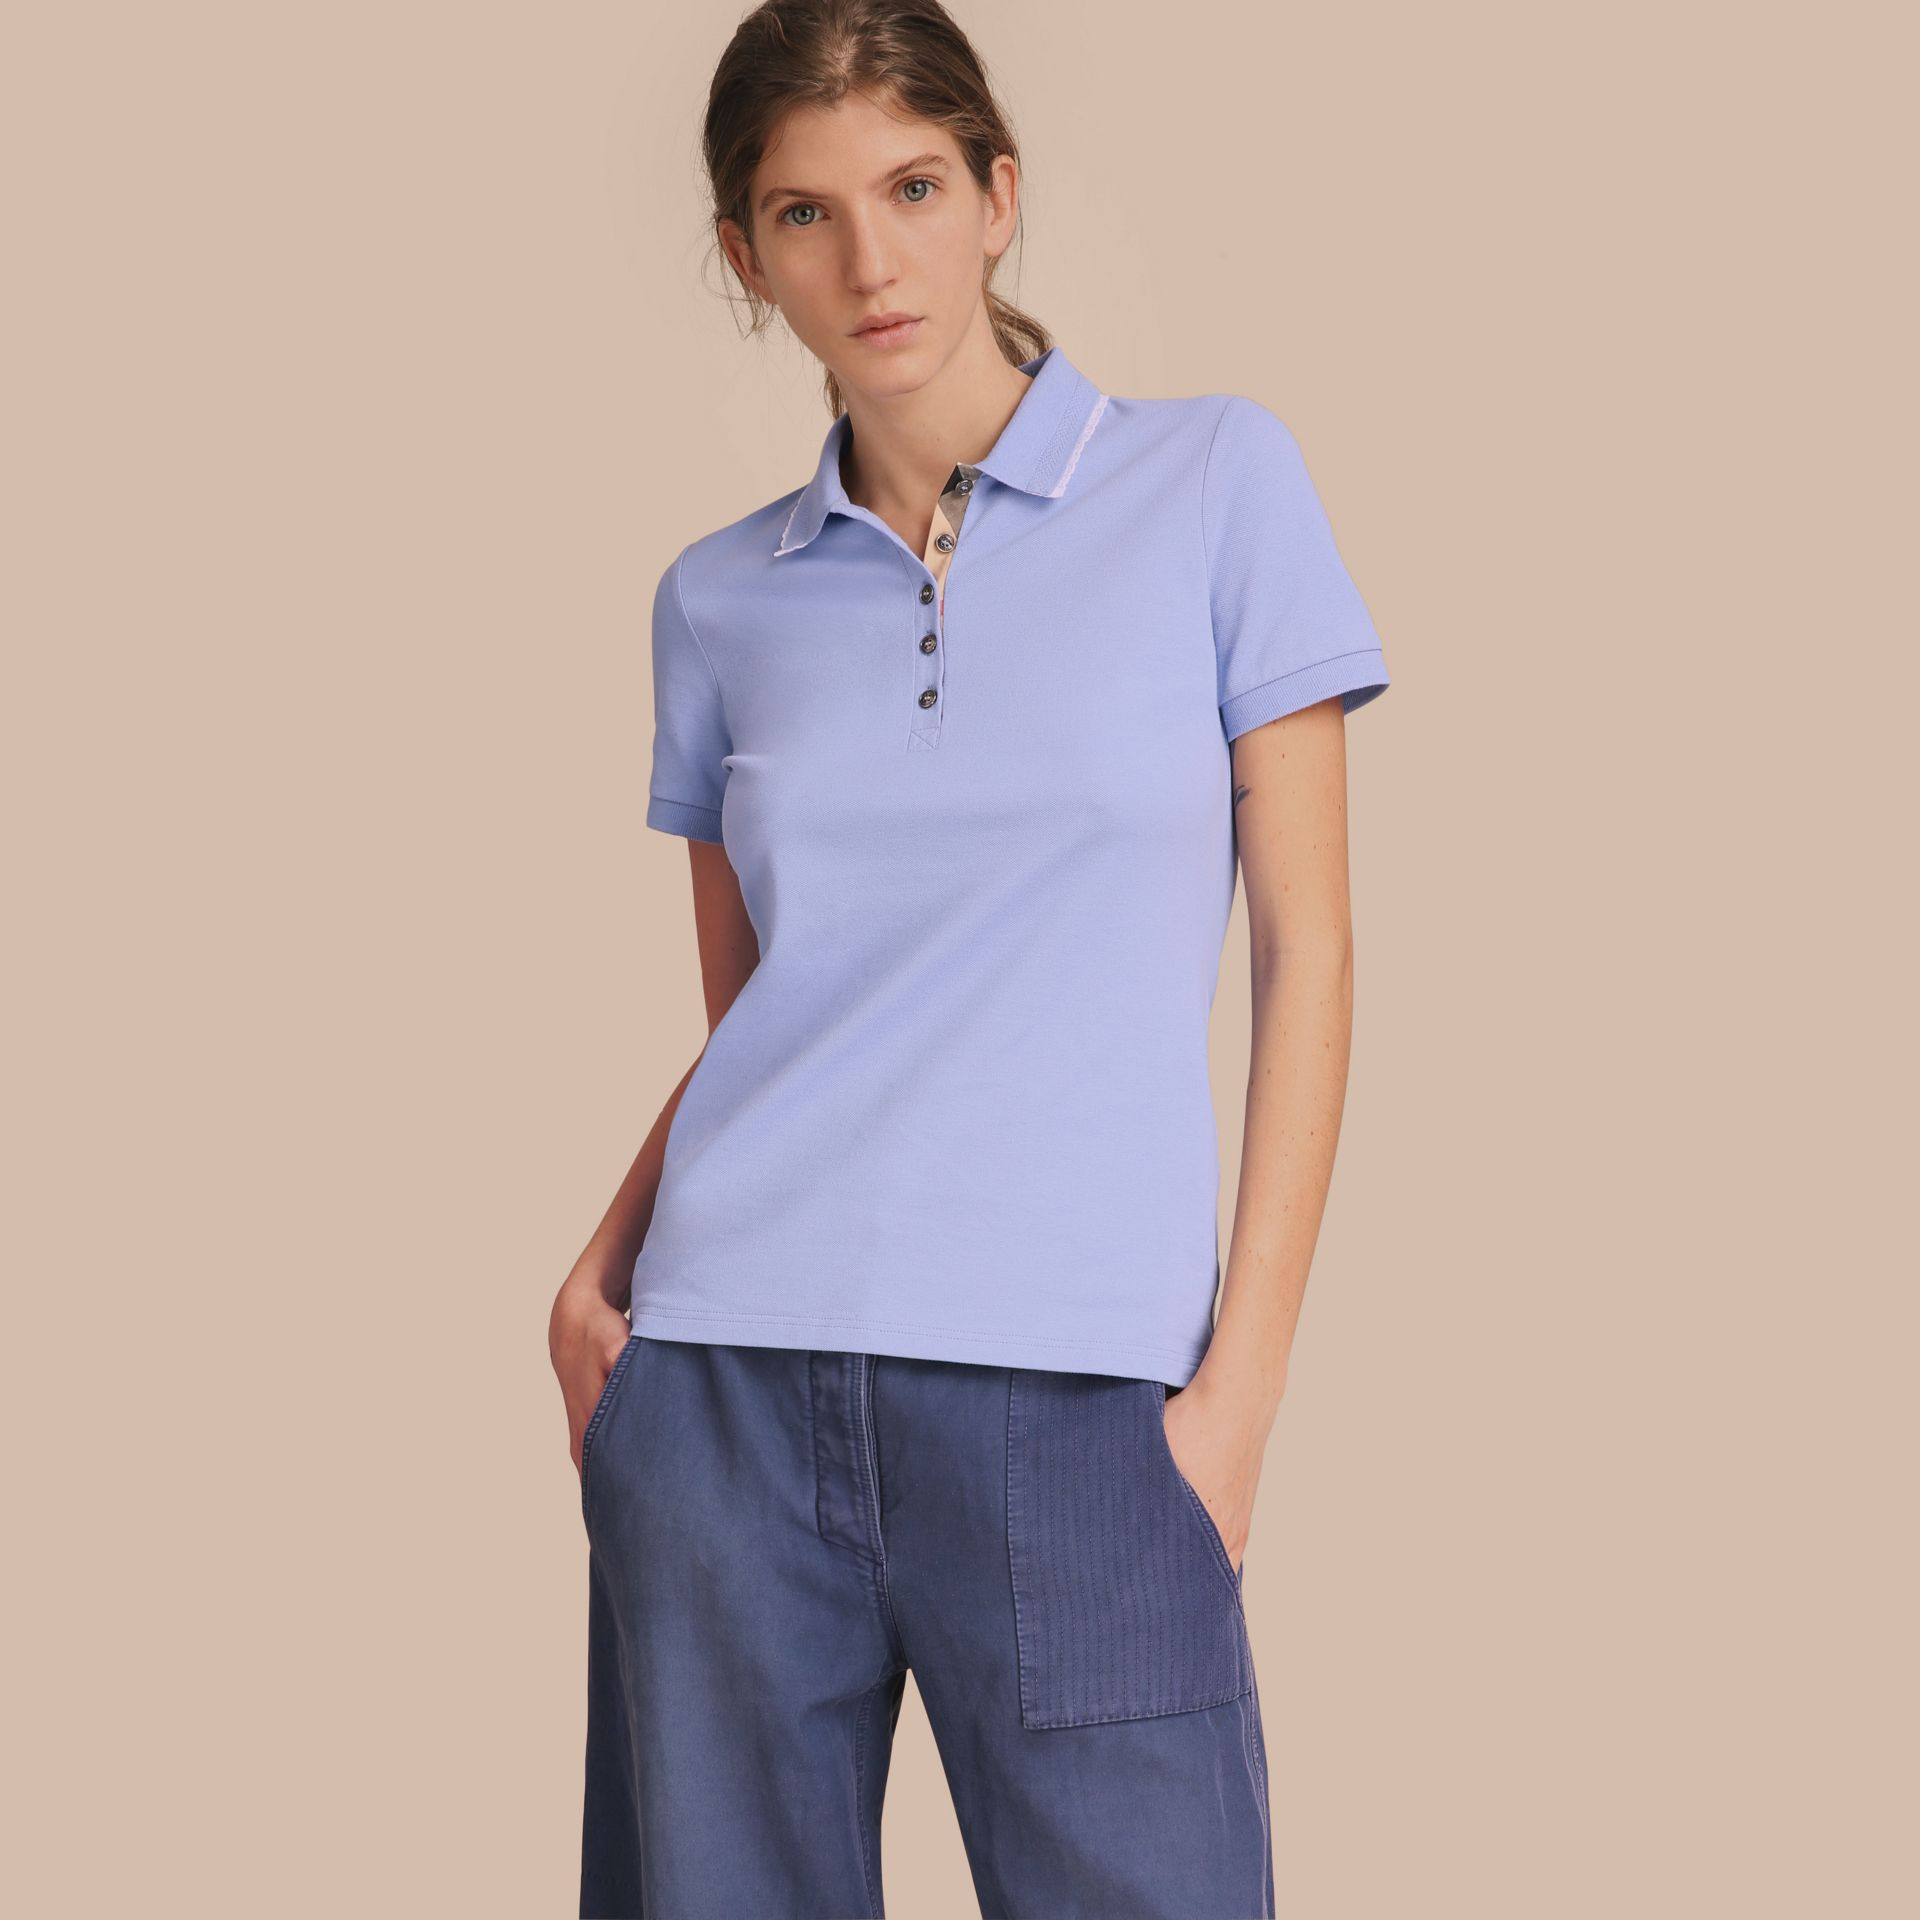 Lace Trim Cotton Blend Polo Shirt with Check Detail in Pale Cornflower Blue - Women | Burberry - gallery image 1